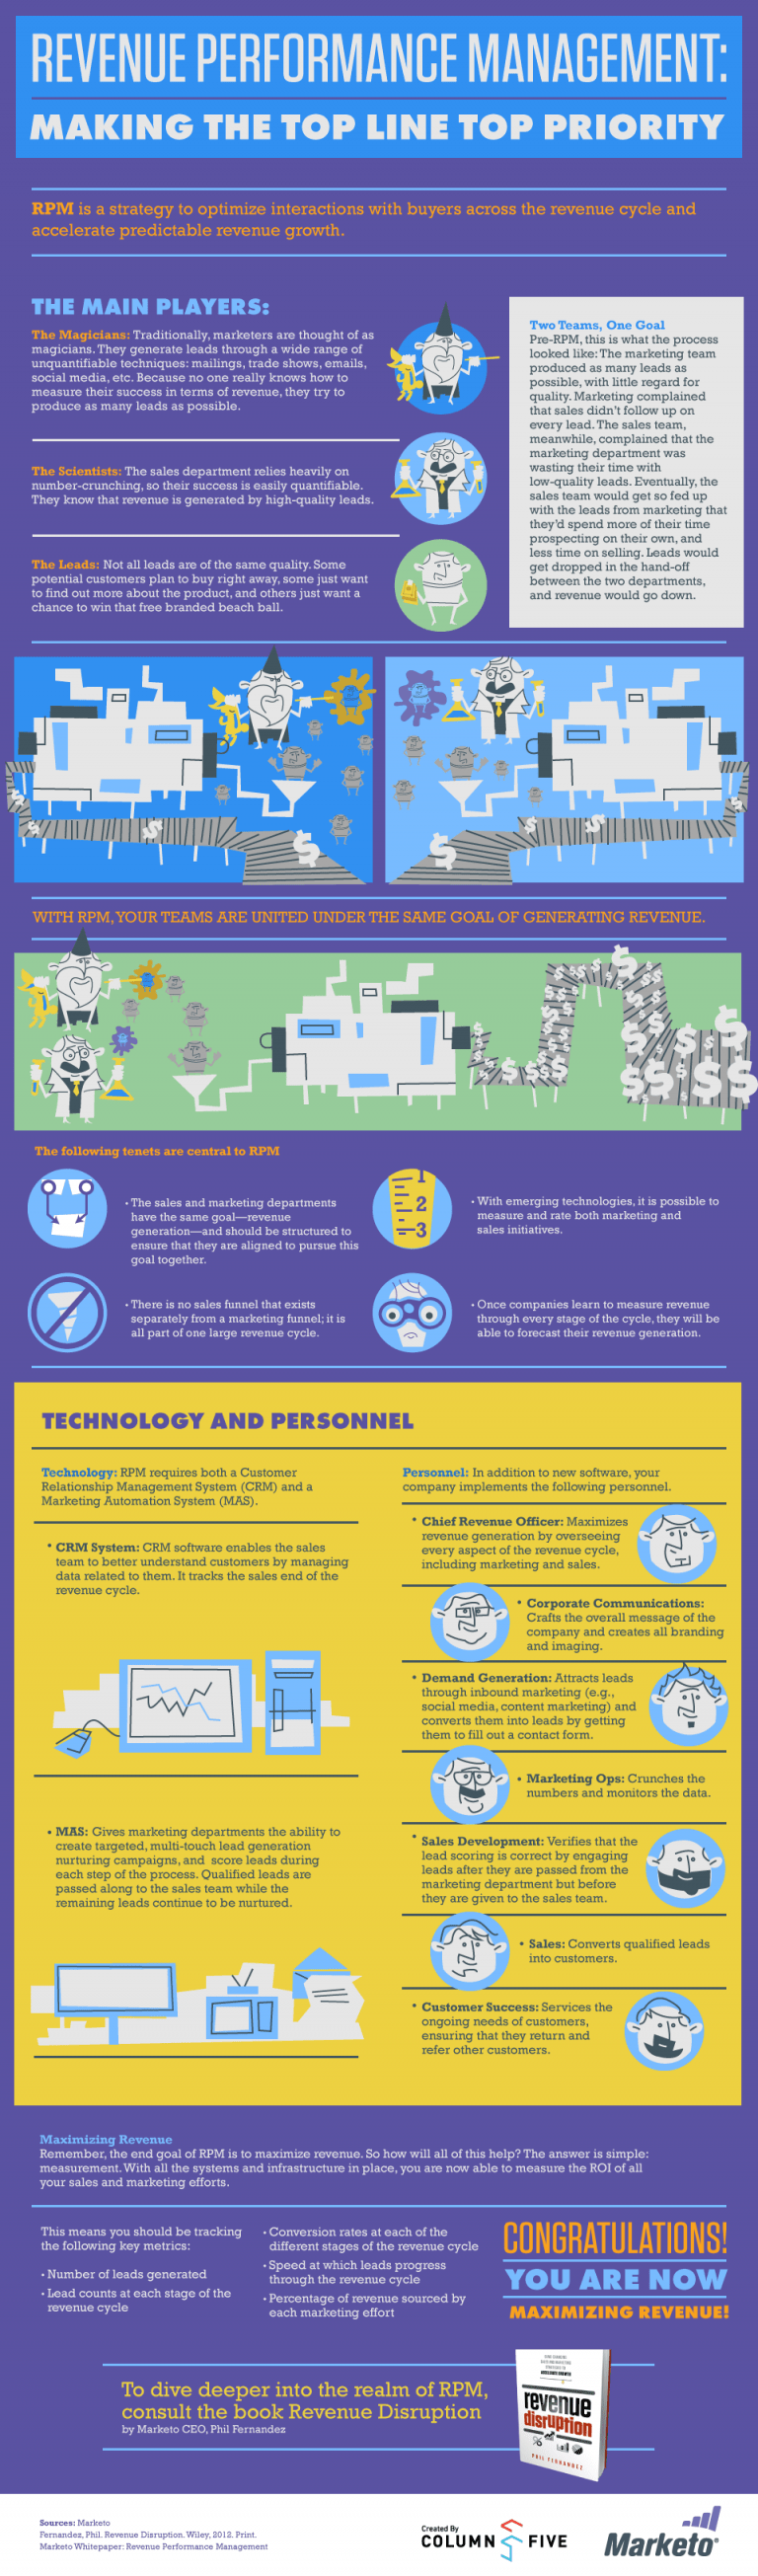 Infographic – Revenue Performance Management Making the Top Line Top Priority